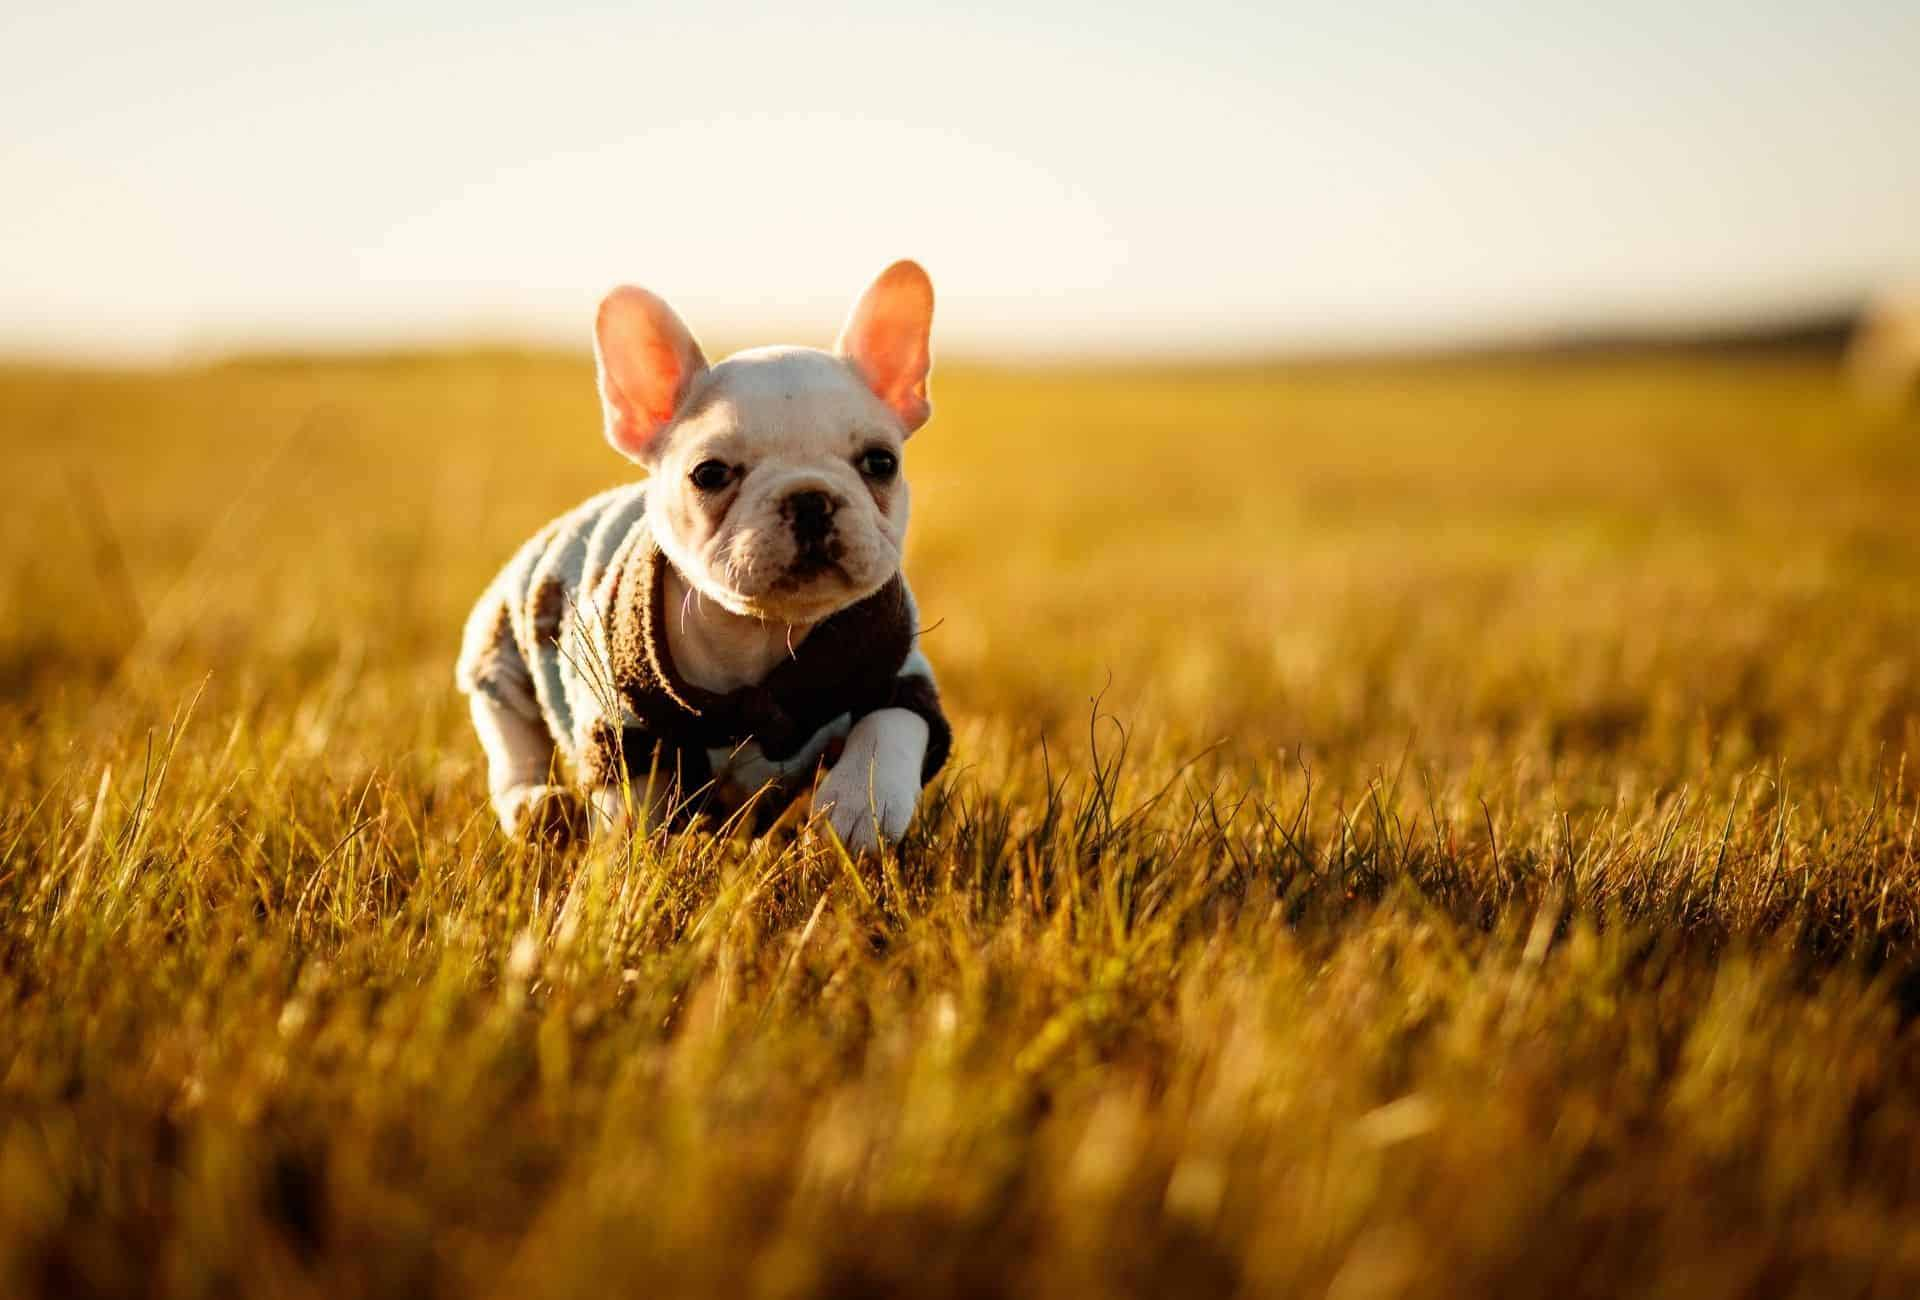 puppy limping in field